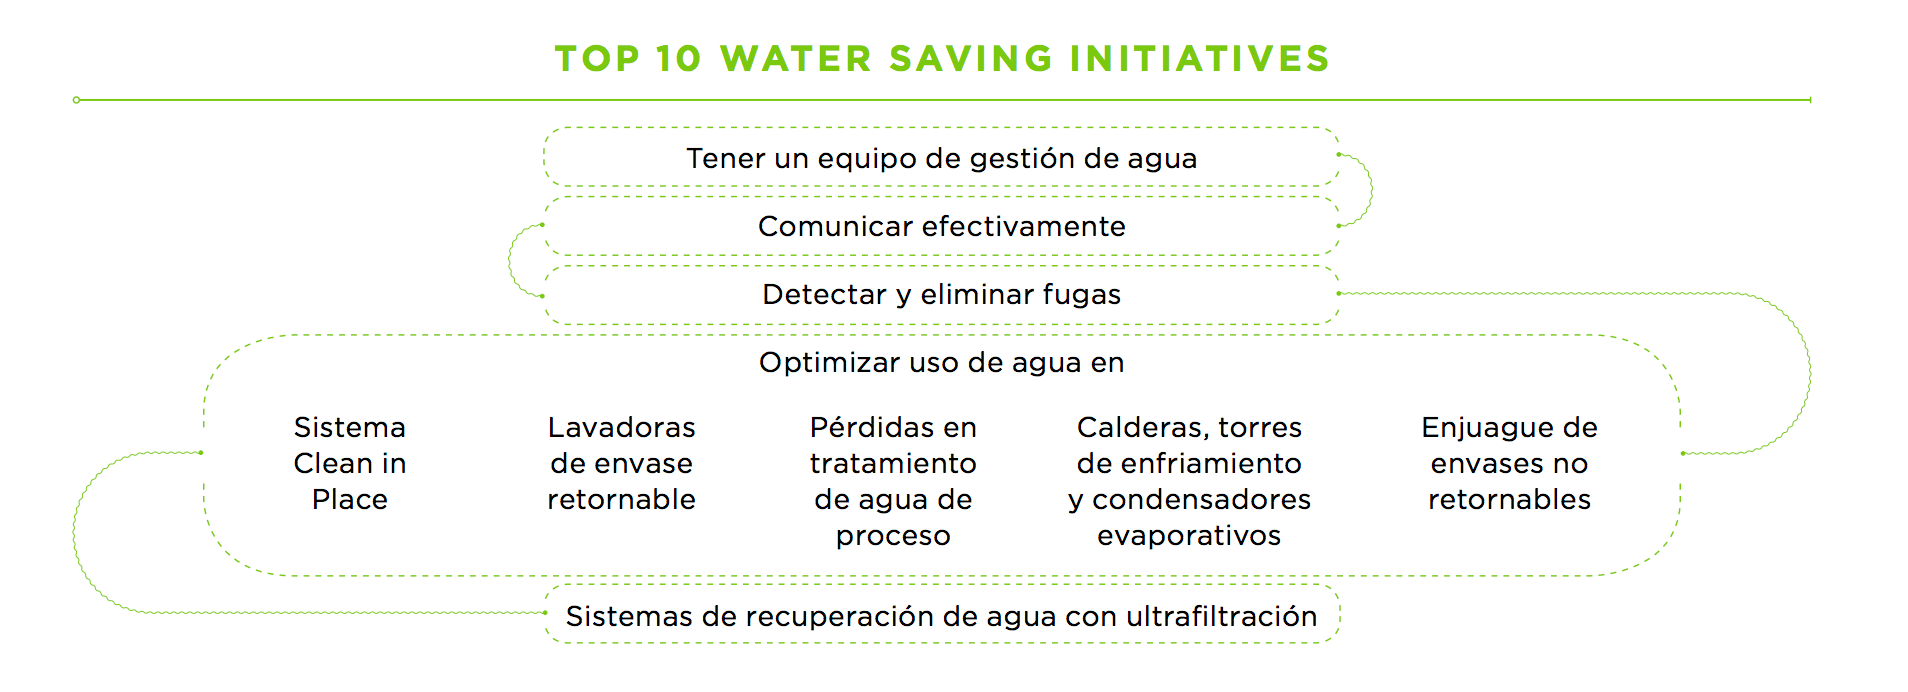 cocacolafemsa_top10watersavinginitiatives